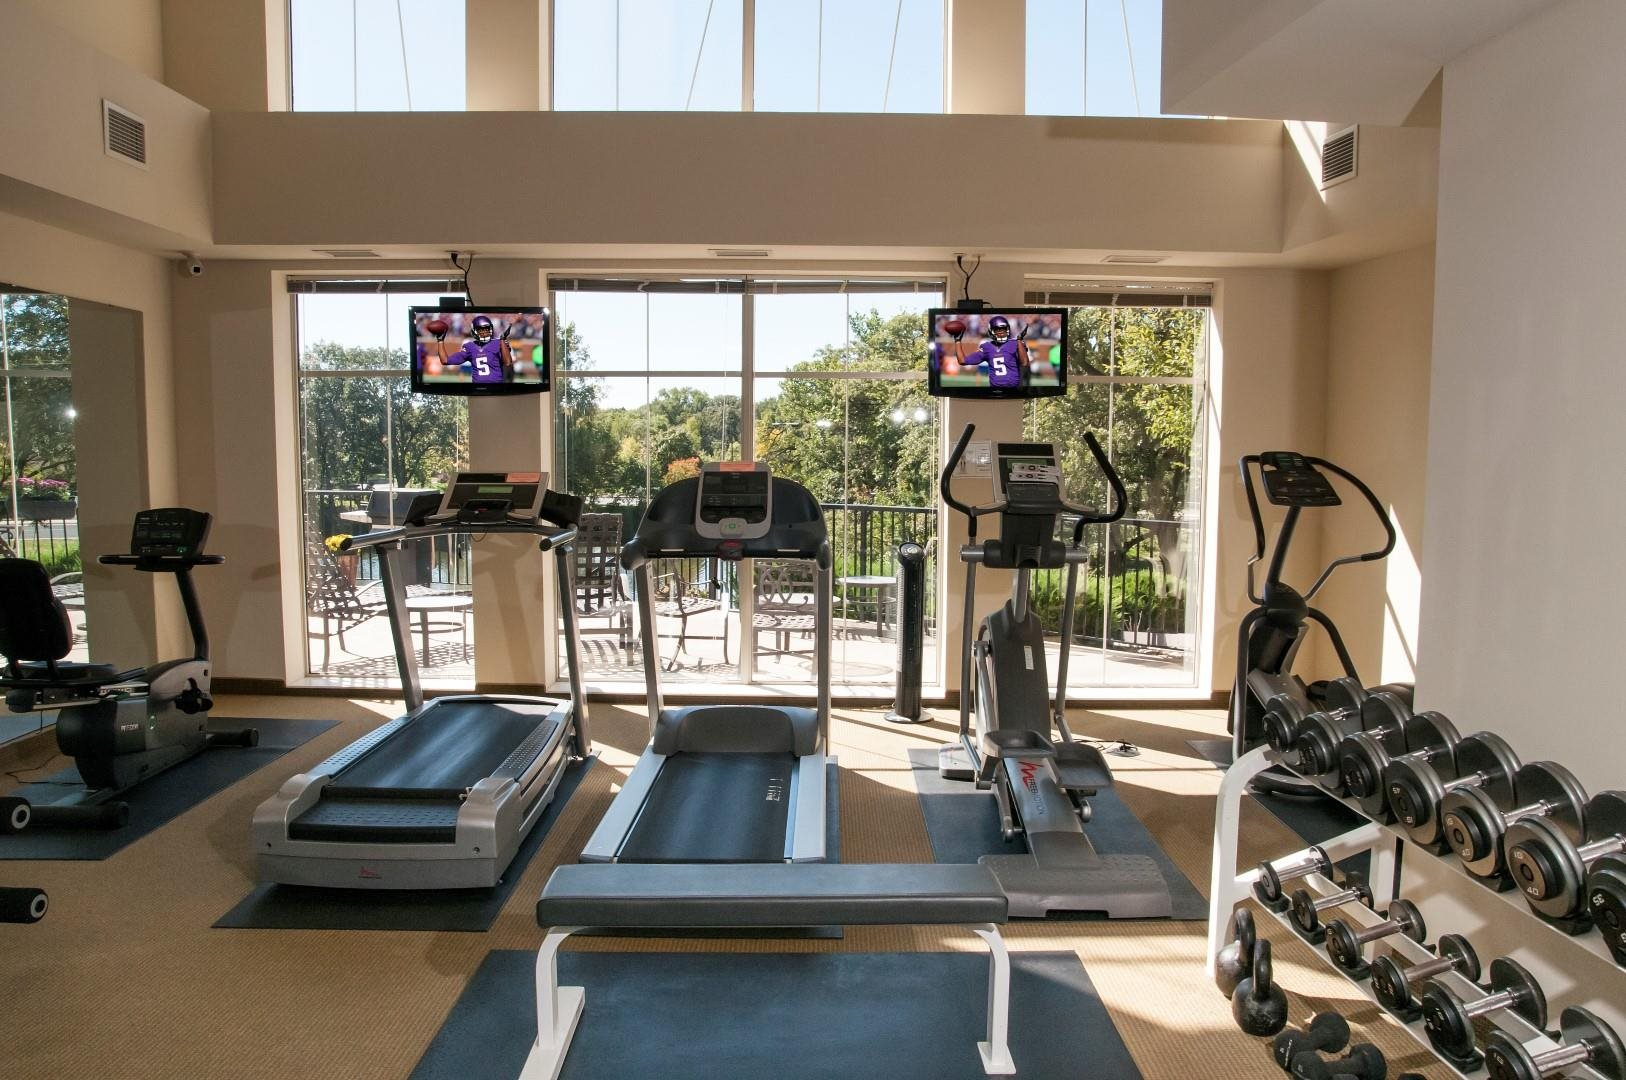 cardio machines overlooking patio and pond